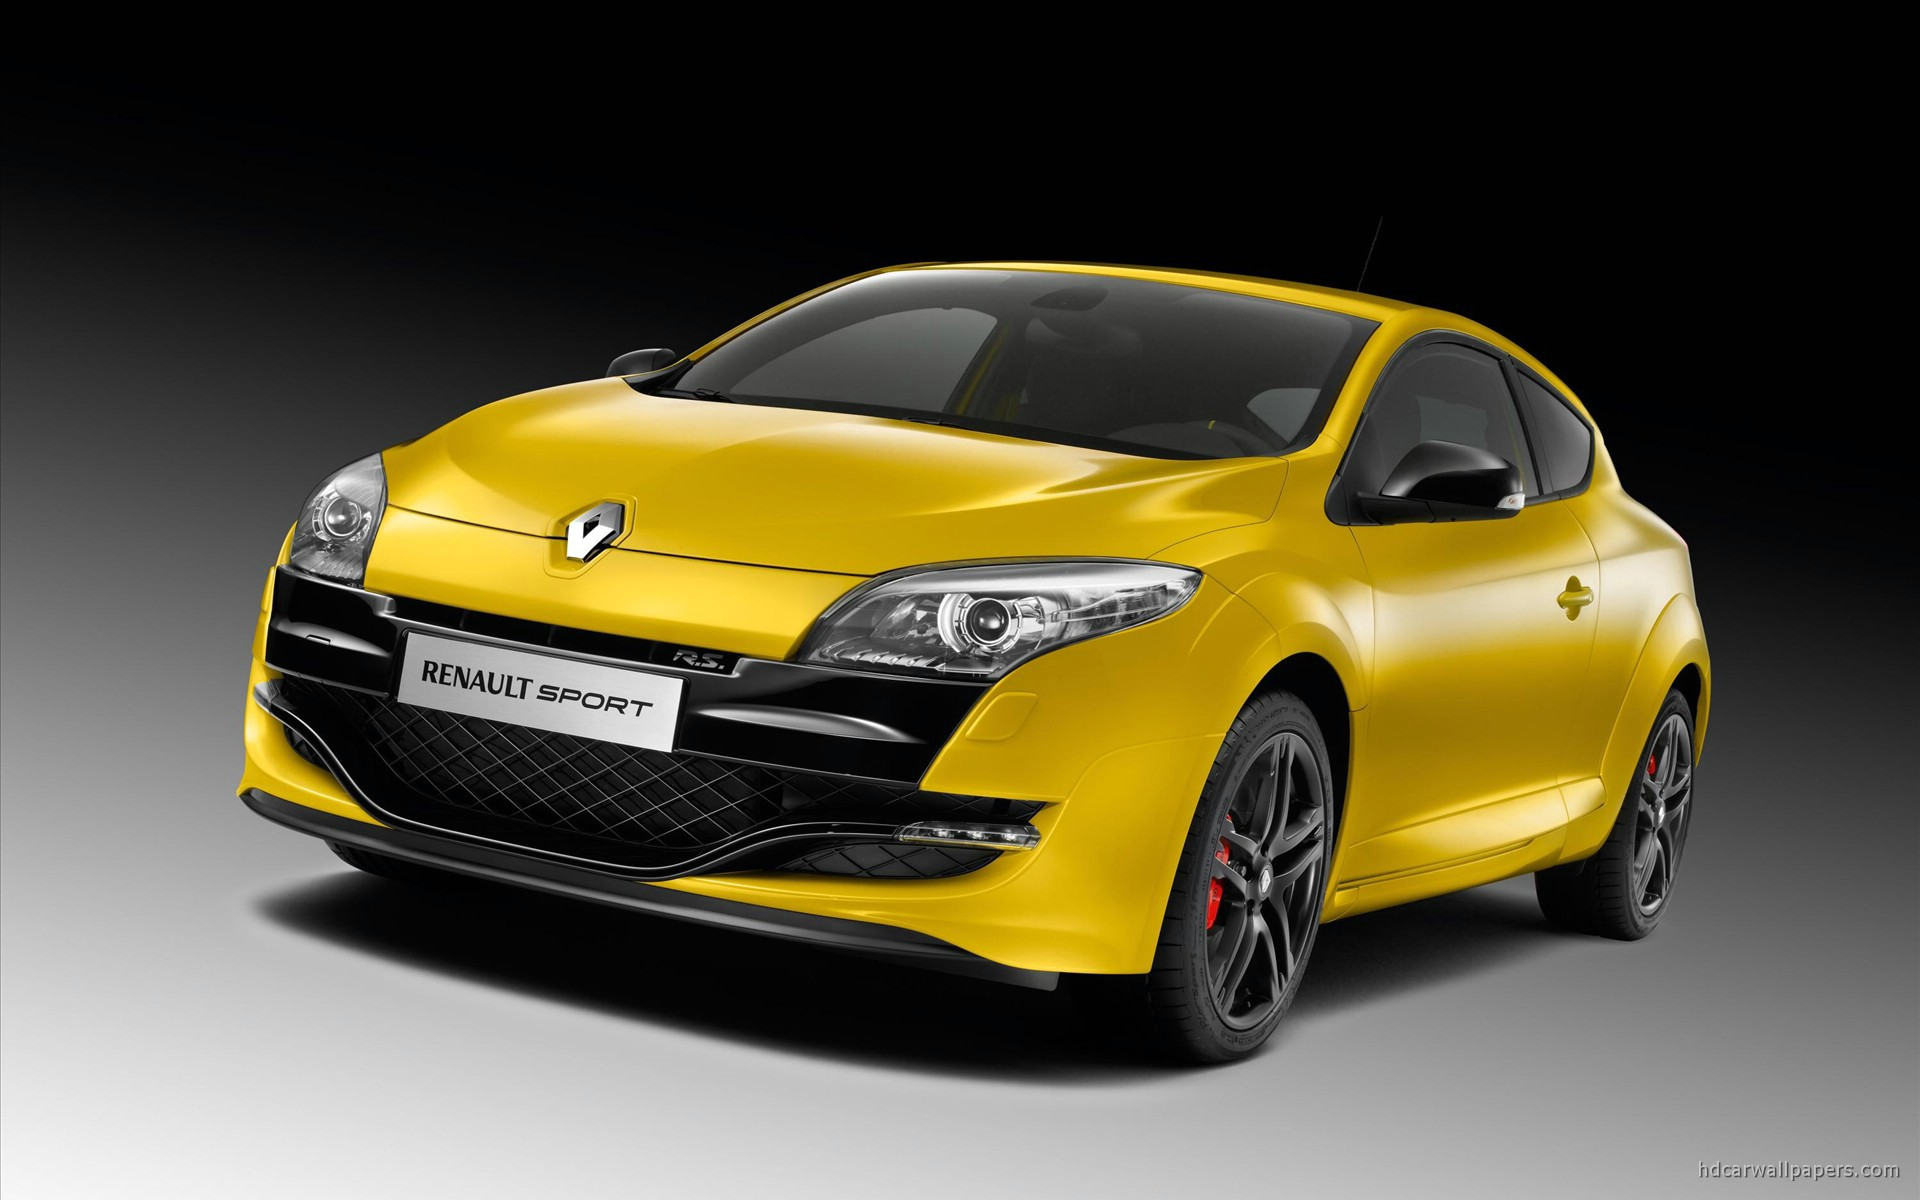 2010 new megane renault sport wallpaper hd car wallpapers id 1457. Black Bedroom Furniture Sets. Home Design Ideas